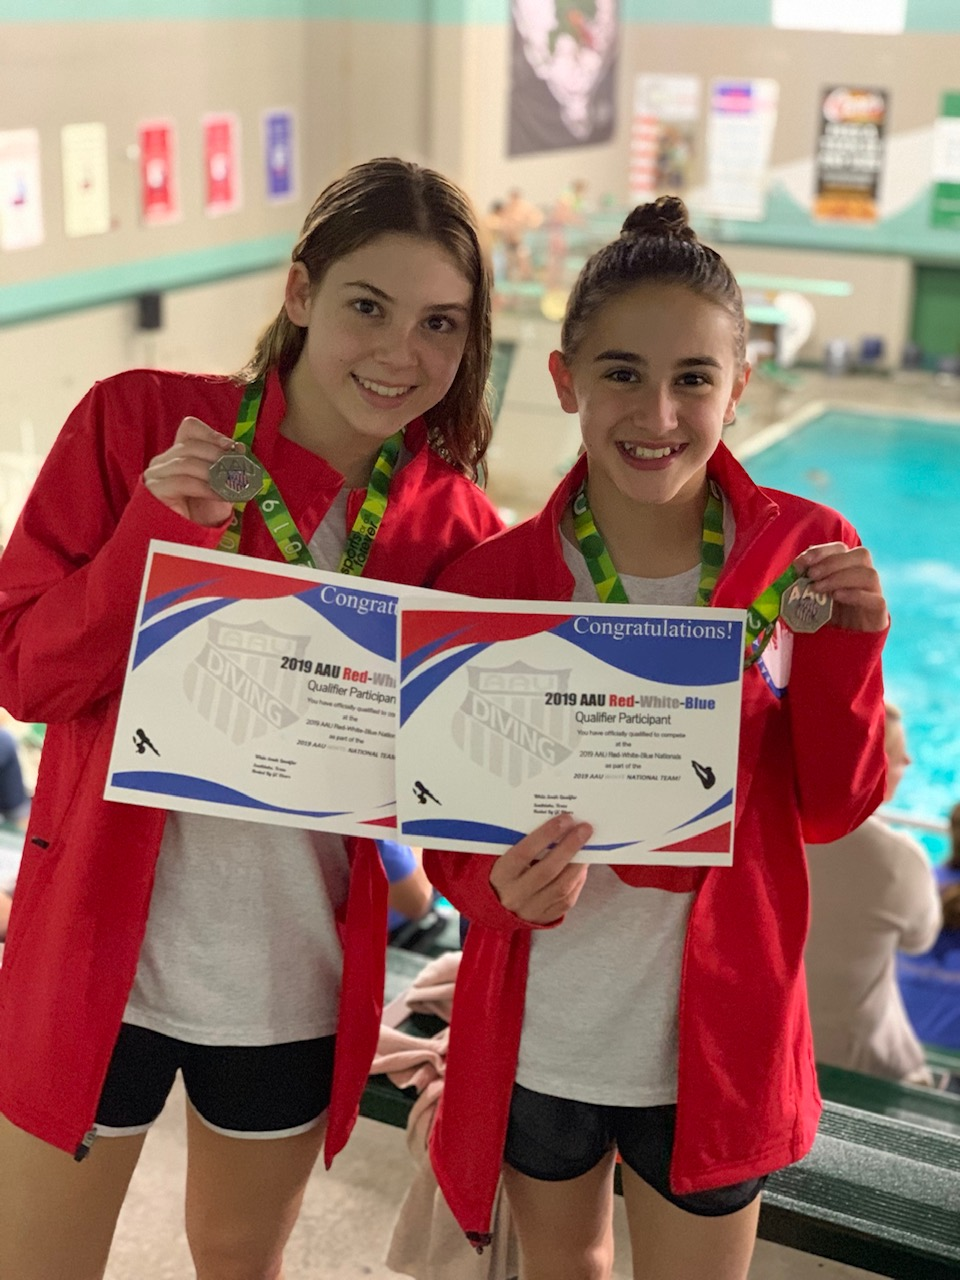 ) Sisters, Ana Laura and Maria Carolina Faoro, qualified to go to the USA Diving Junior Nationals. Ana Laura finished in the top 40 in the nation. Maria finished in the top 12 in the nation. While at Nationals, Ana Laura had opportunities to meet with college recruiters.